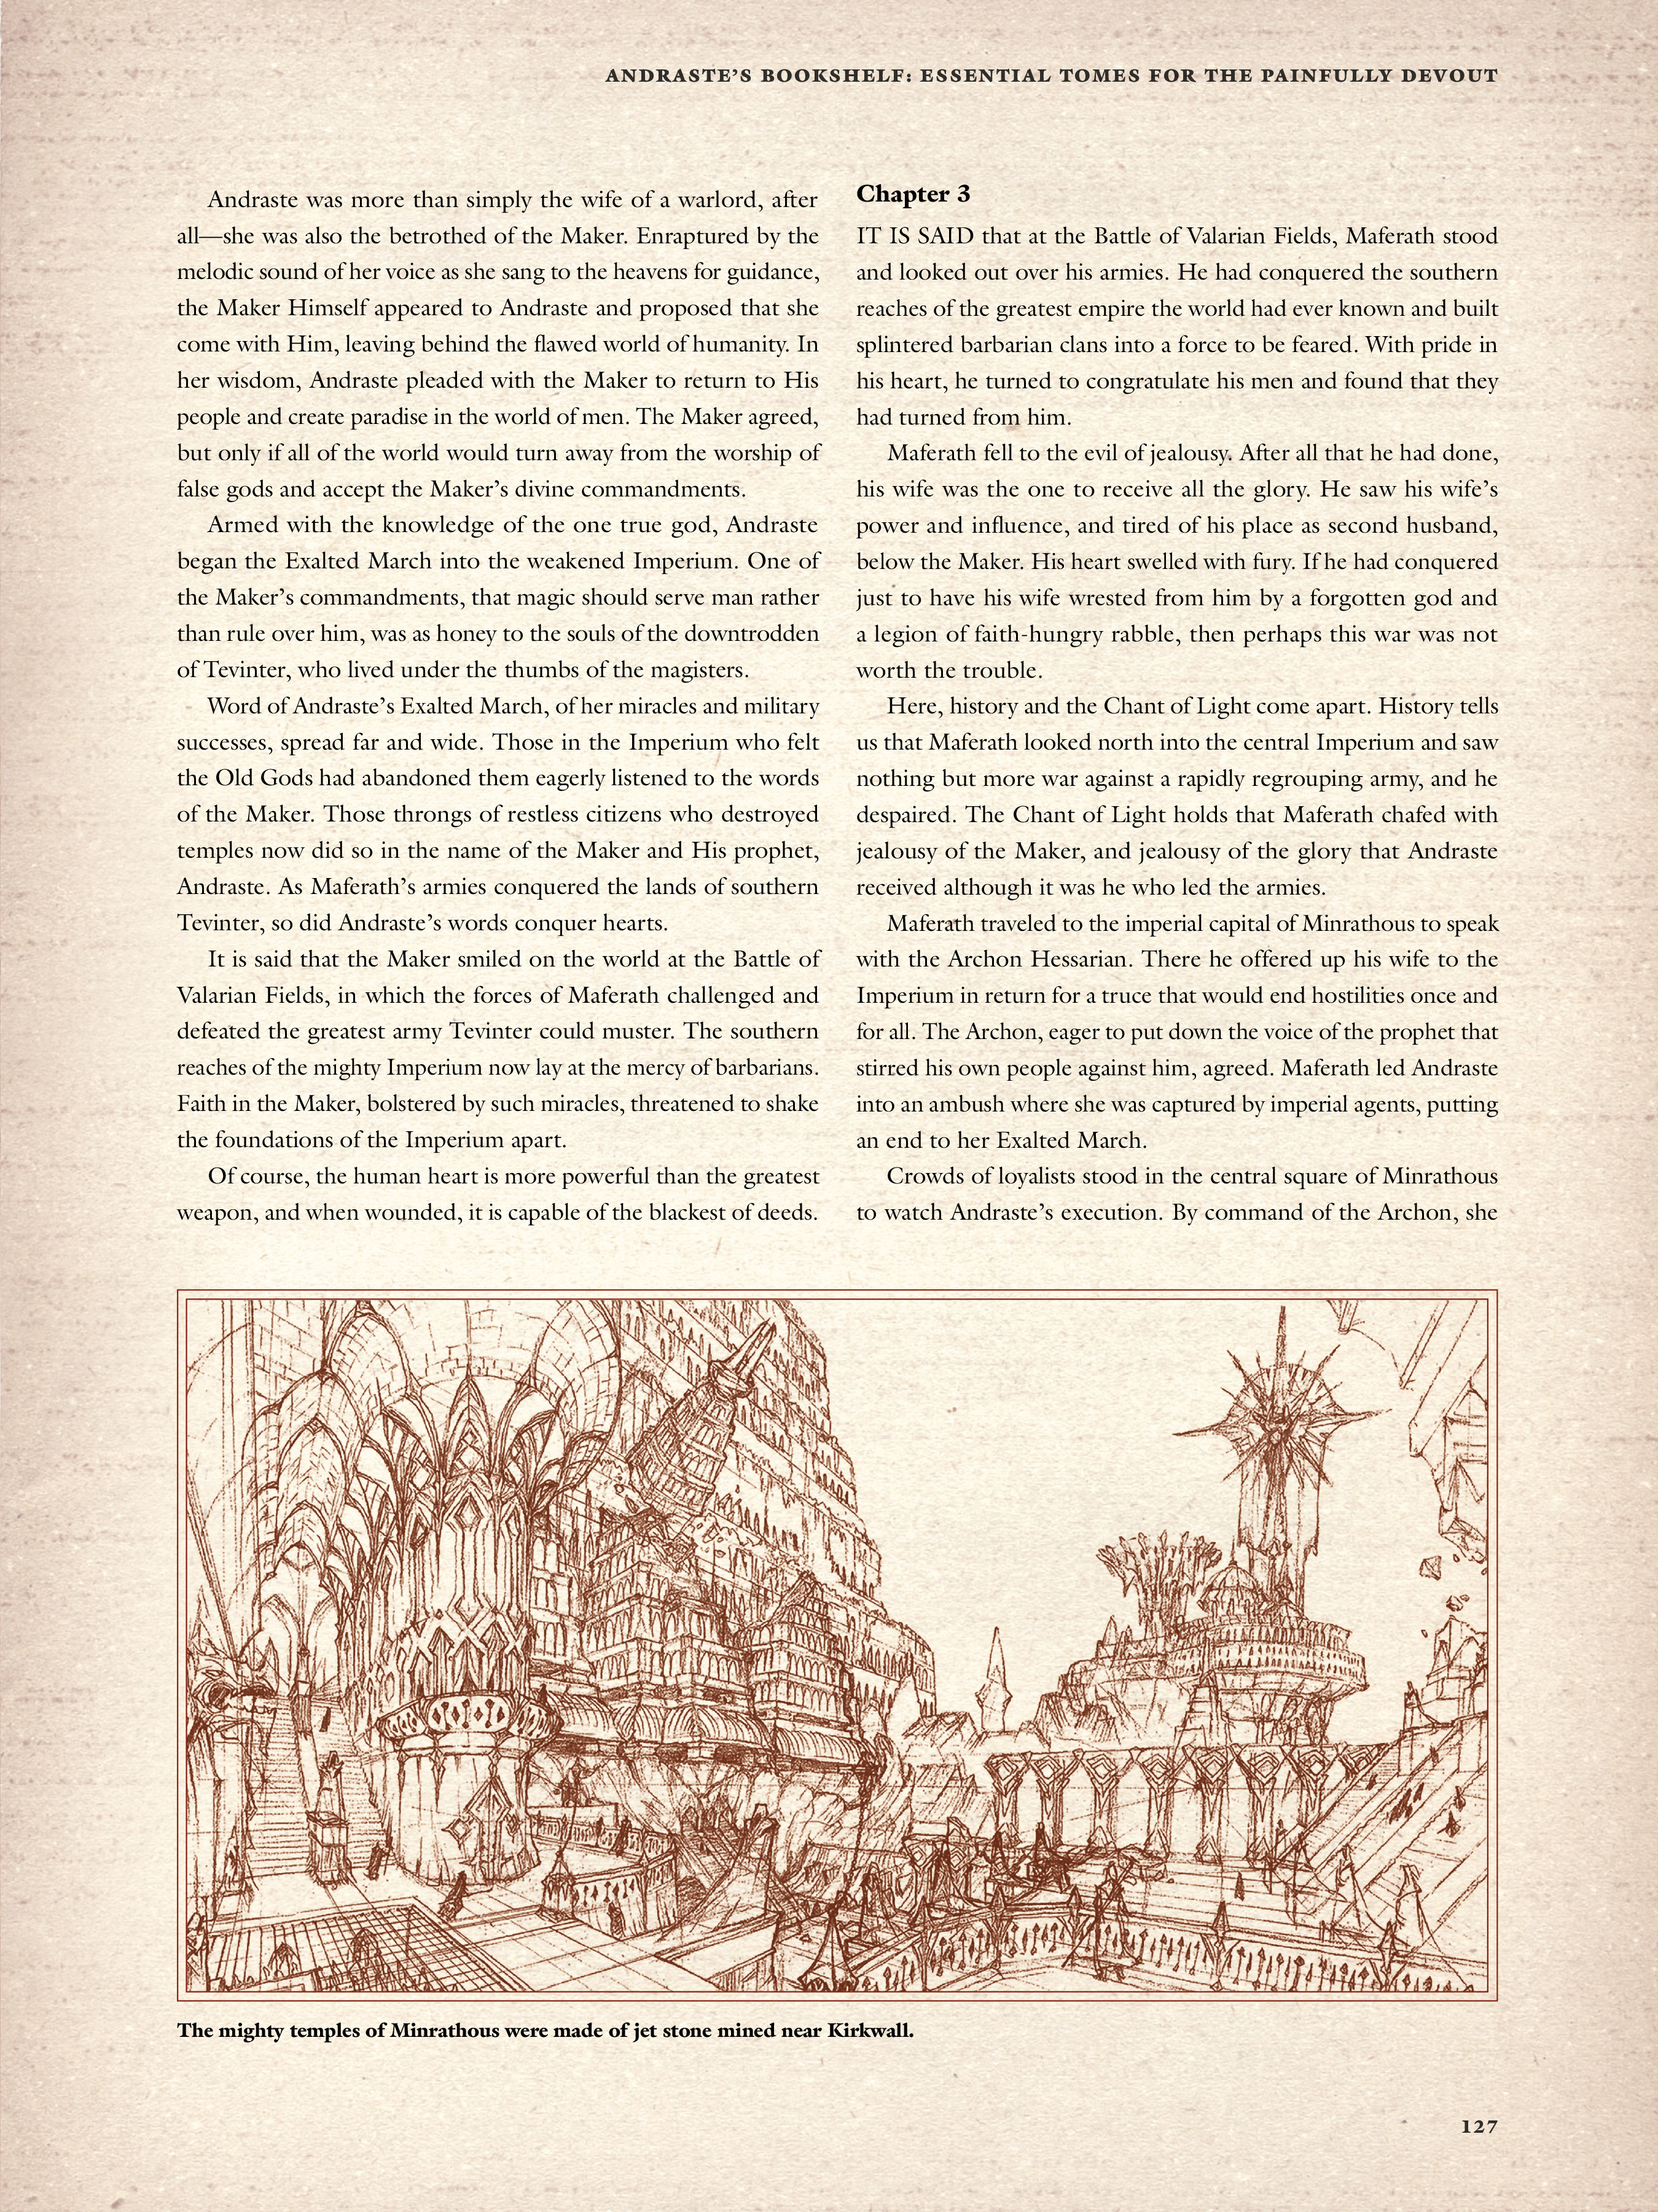 Read online Dragon Age: The World of Thedas comic -  Issue # TPB 2 - 123